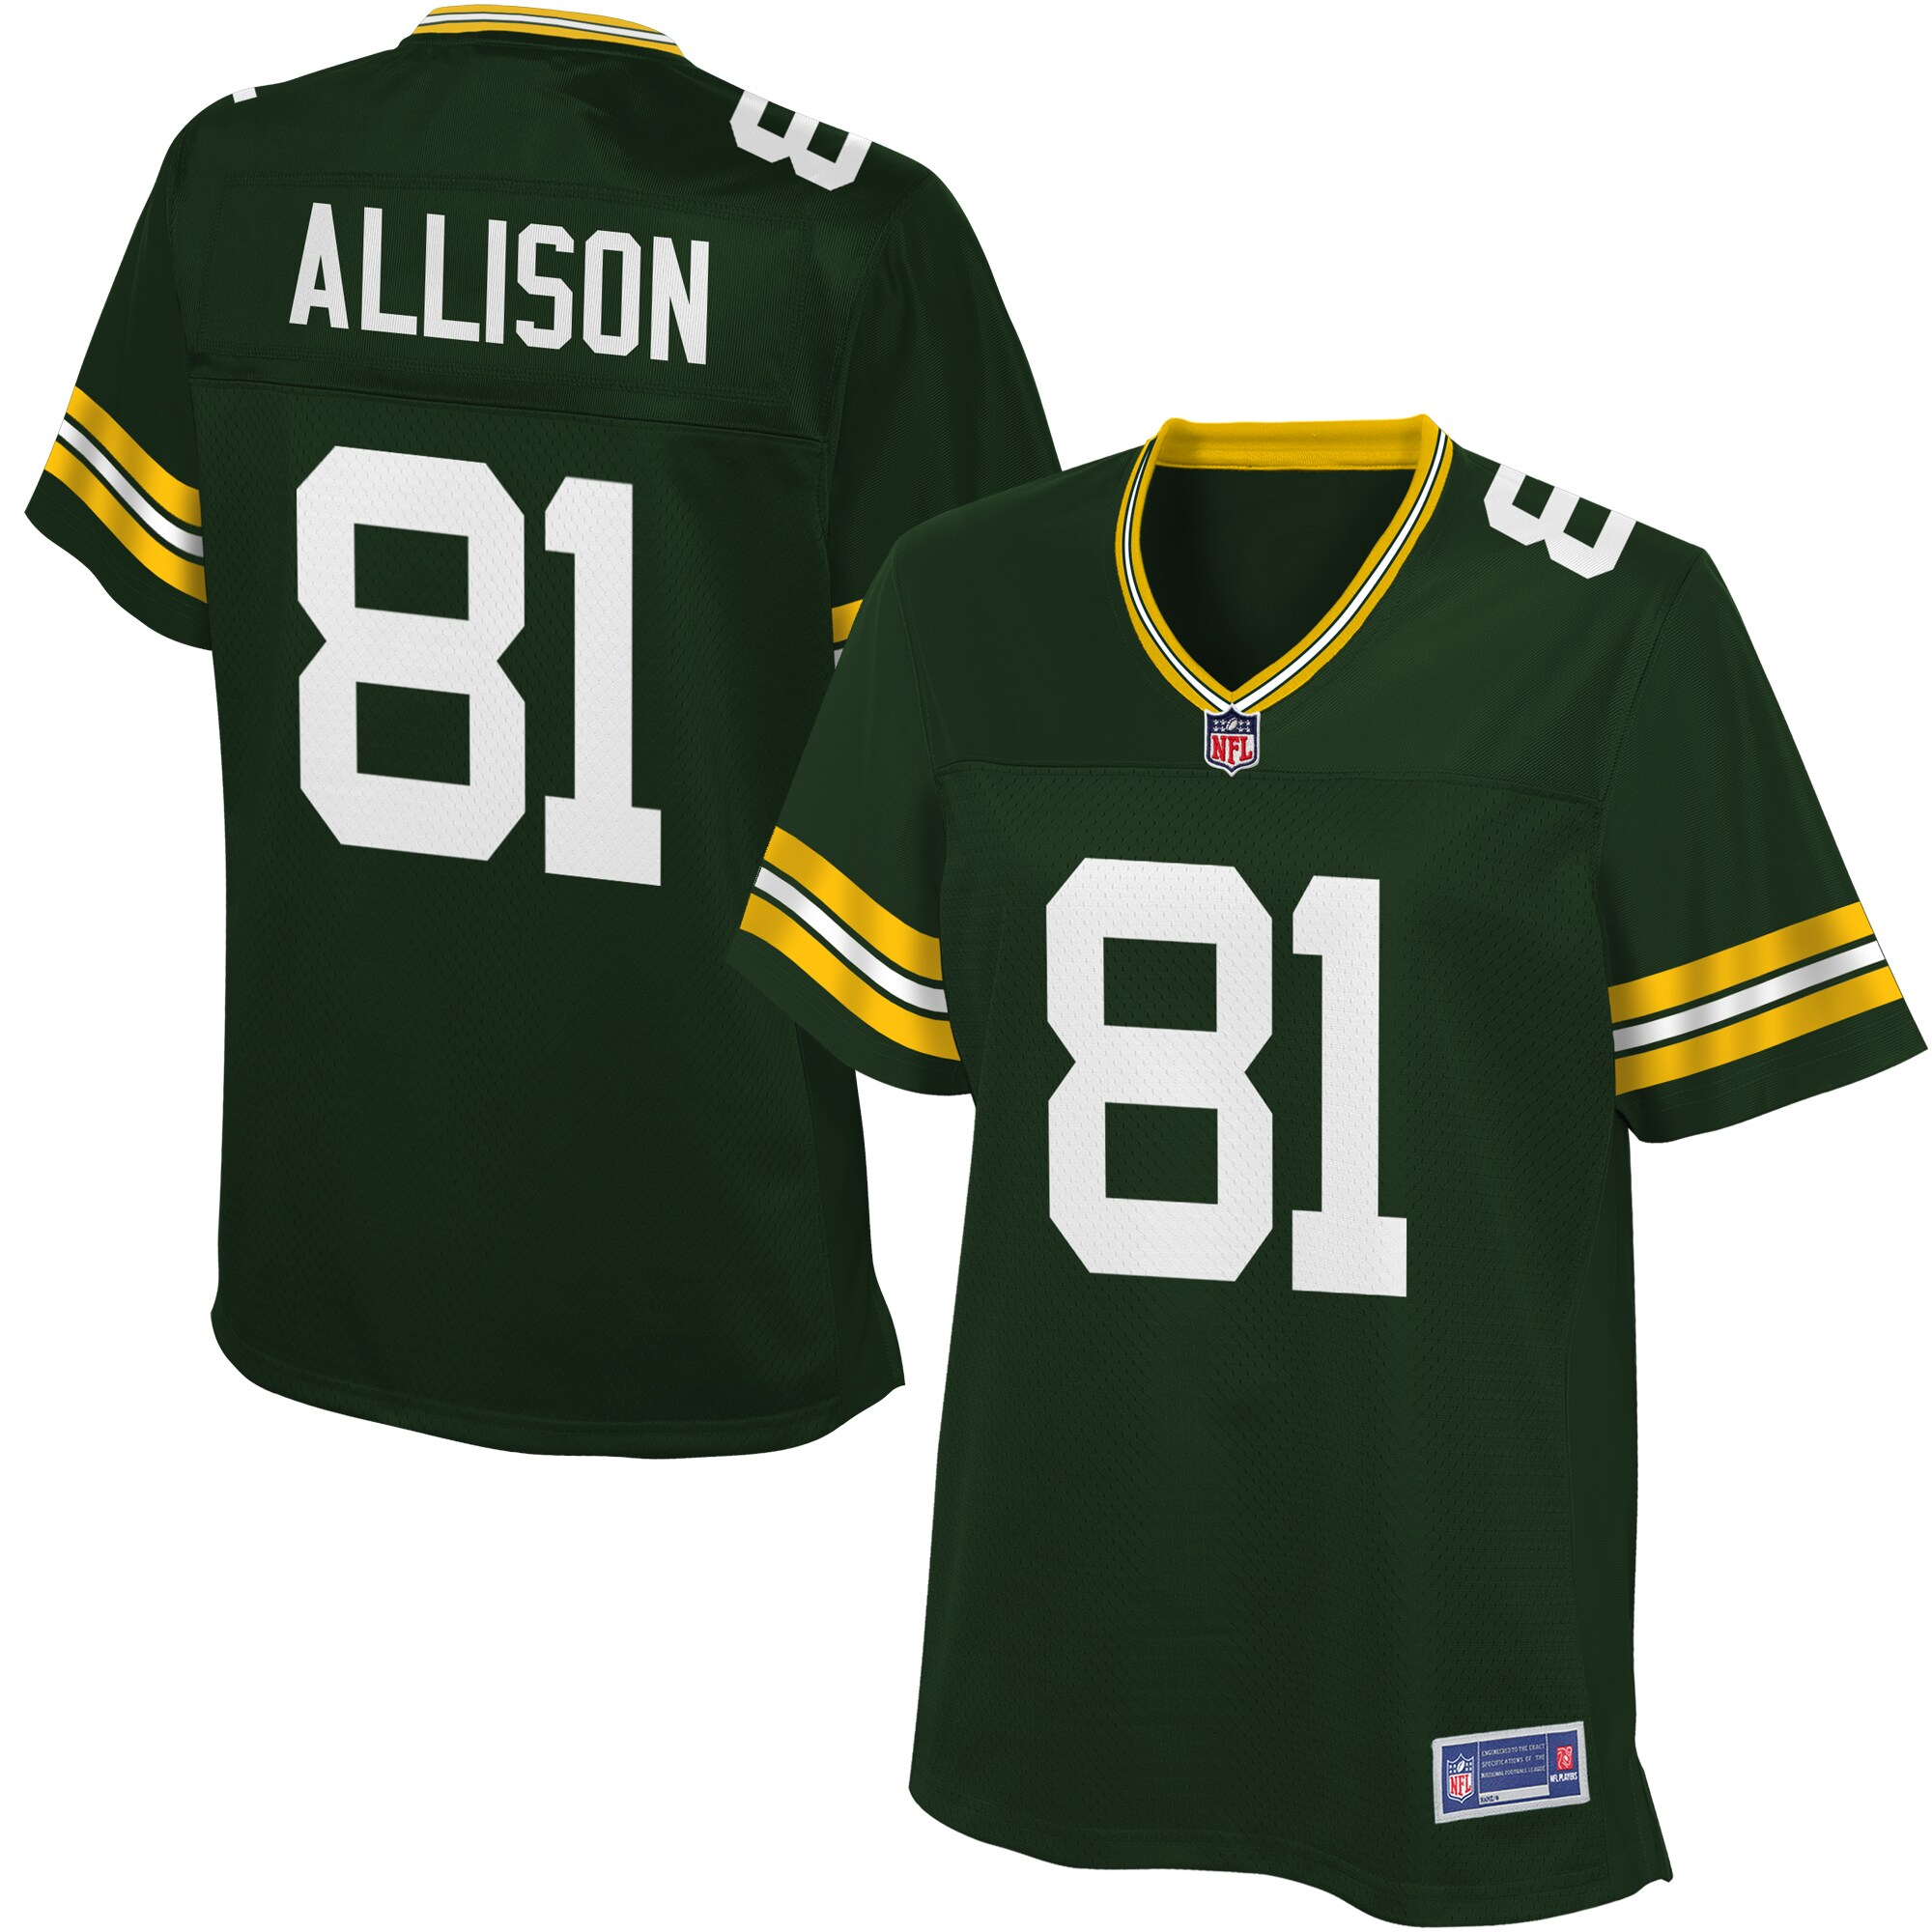 Geronimo Allison Green Bay Packers NFL Pro Line Women's Player Jersey - Green